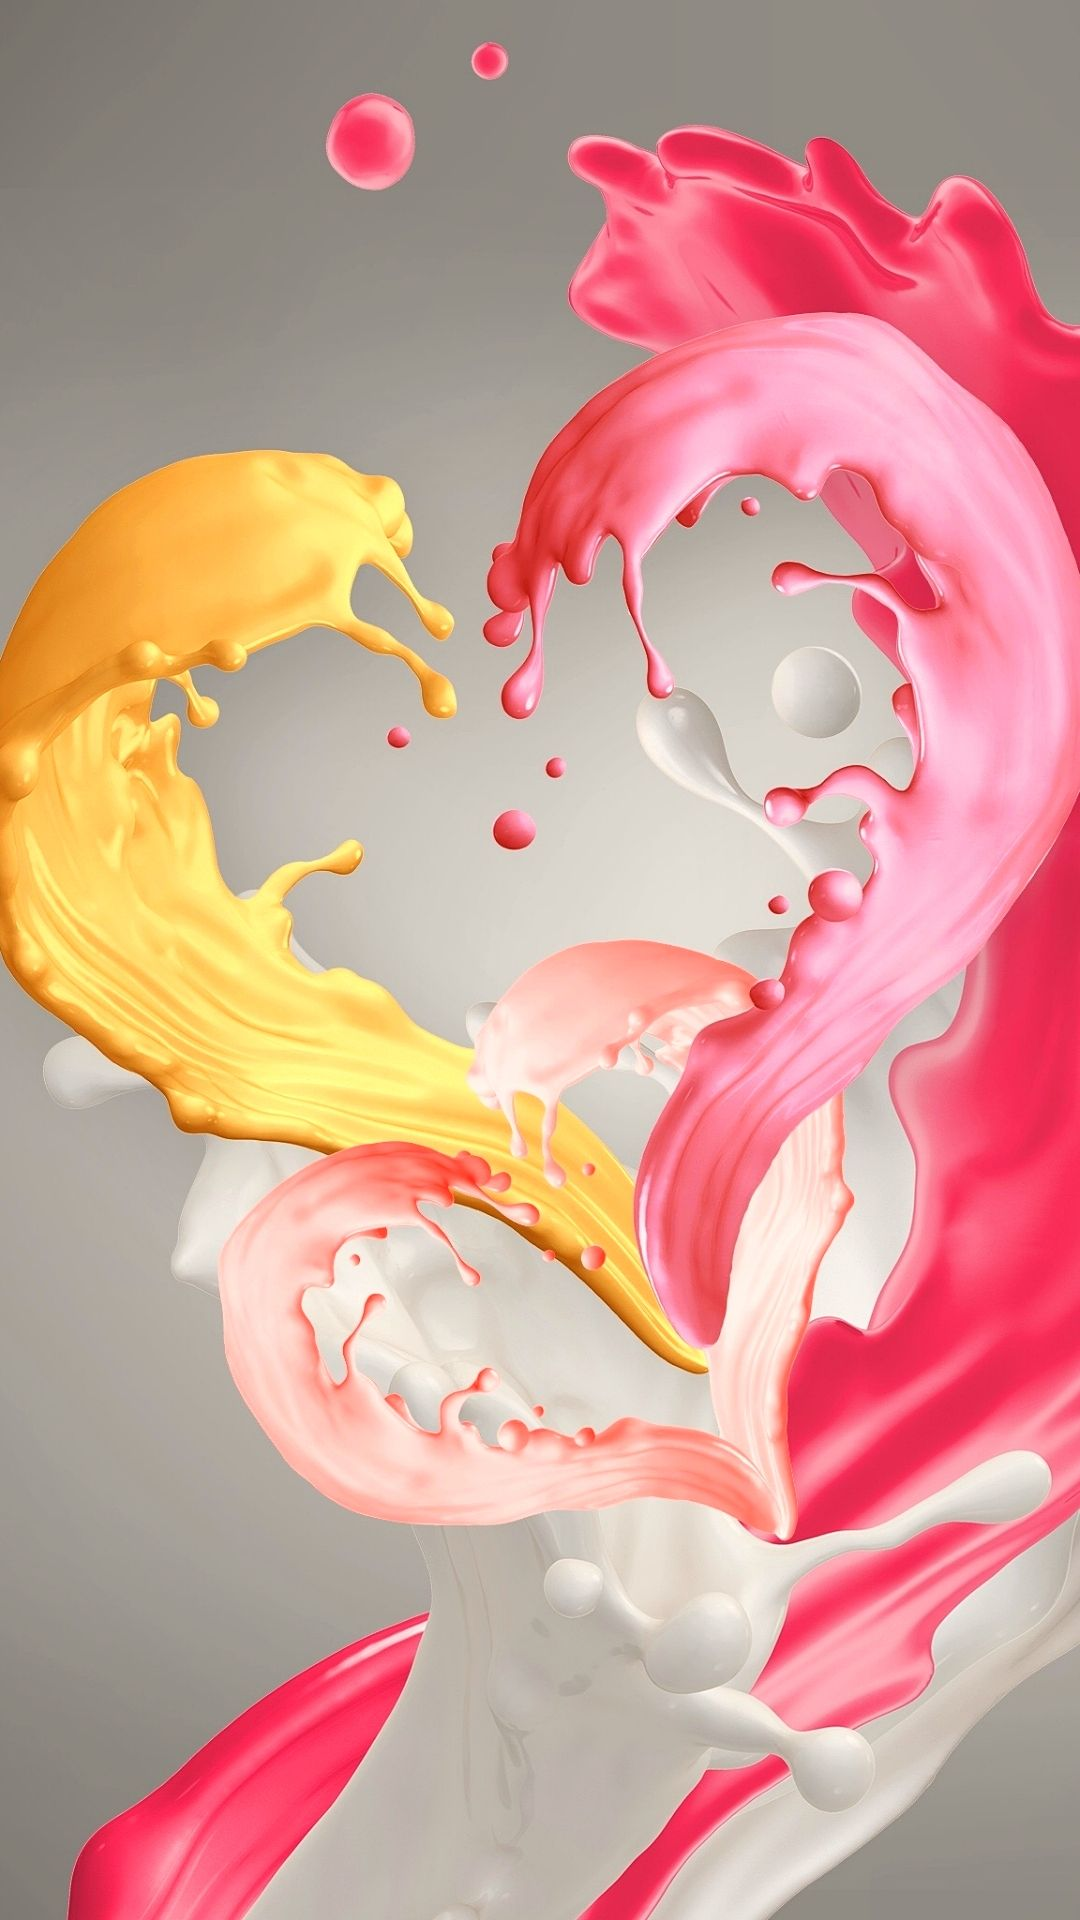 Pink And Yellow Paint Heart Samsung Galaxy J2 Core Hd Wallpapers In 2021 Heart Iphone Wallpaper Heart Wallpaper Yellow Painting